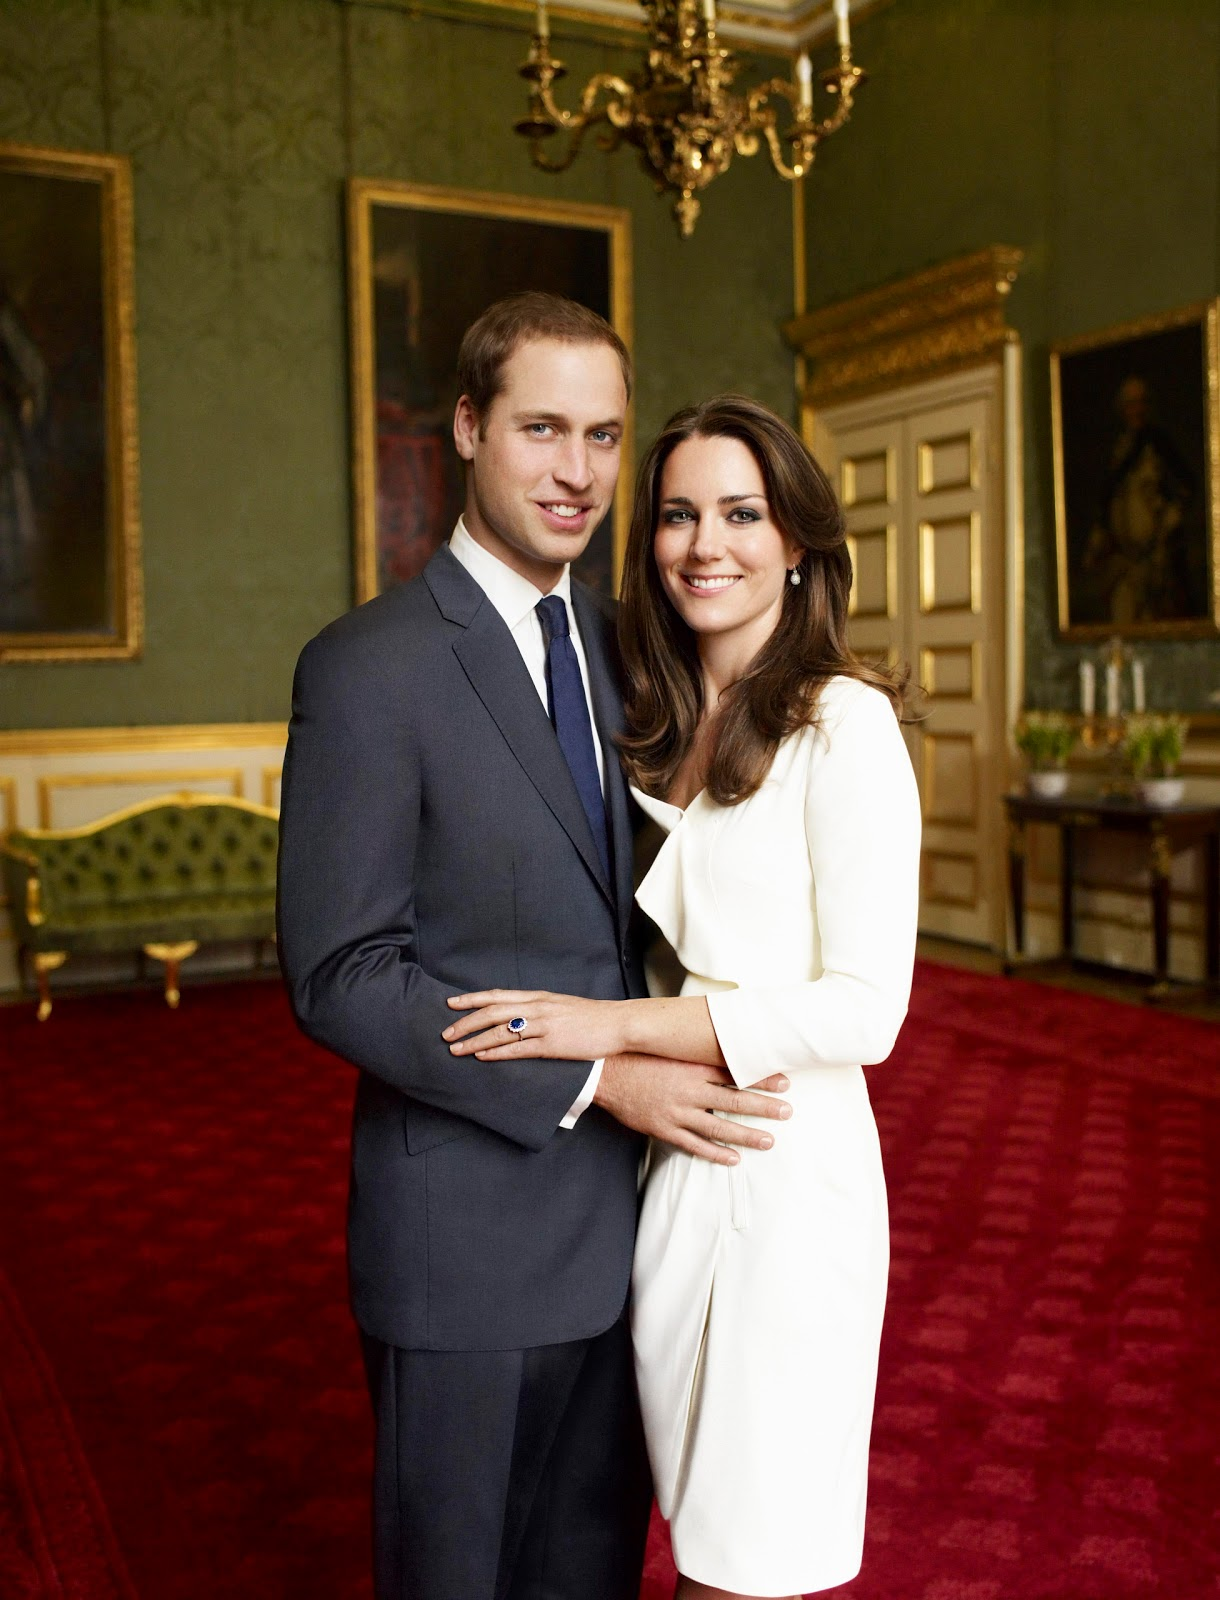 http://2.bp.blogspot.com/-zmlcSJRKSIA/UJTwl1RhtPI/AAAAAAAADJw/PB72KkIxhOw/s1600/mario-testino-royal-photographer-prince-william-kate-middleton-engagement-picture.jpg